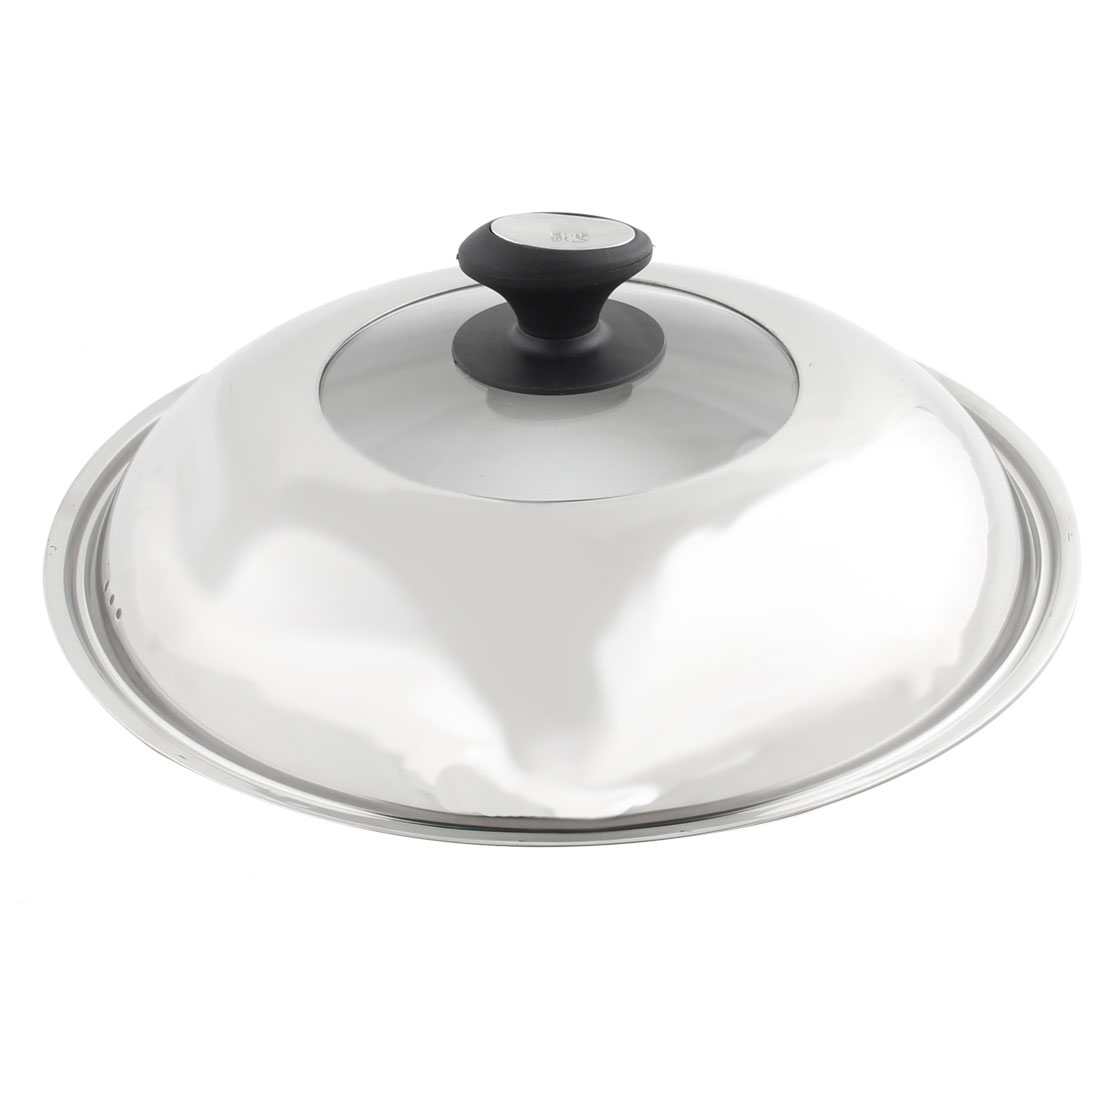 Restaurant Stainless Steel Cookware Cooker Pot Skillet Frying Pan Knob Lid Cover 33cm Dia